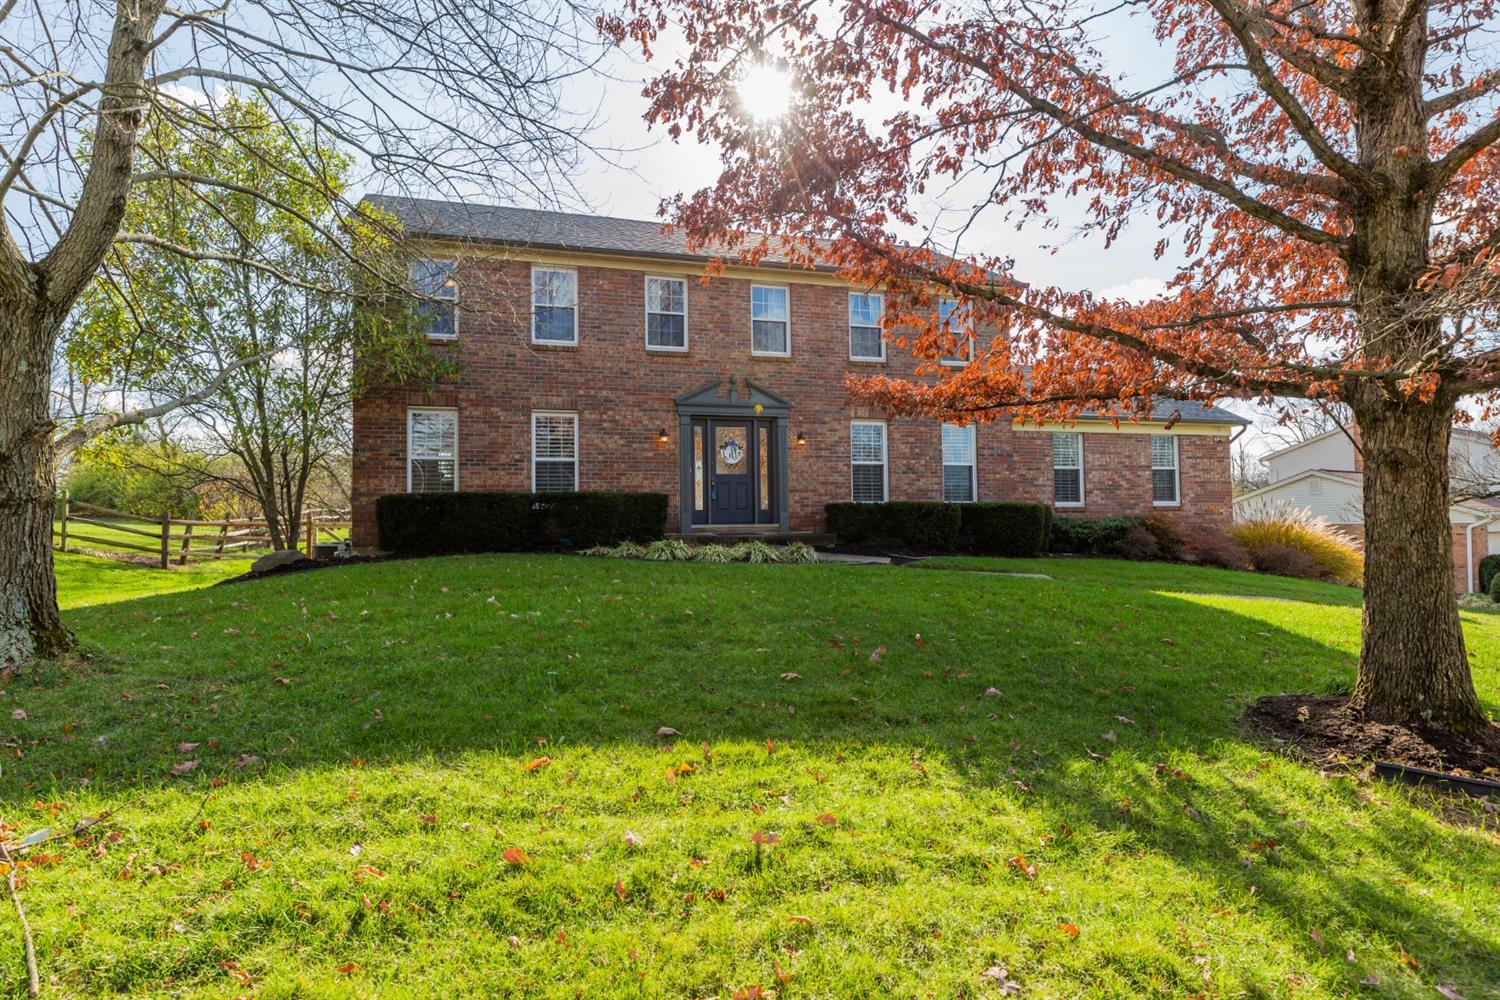 7009 Sprucewood Ct West Chester - East, OH